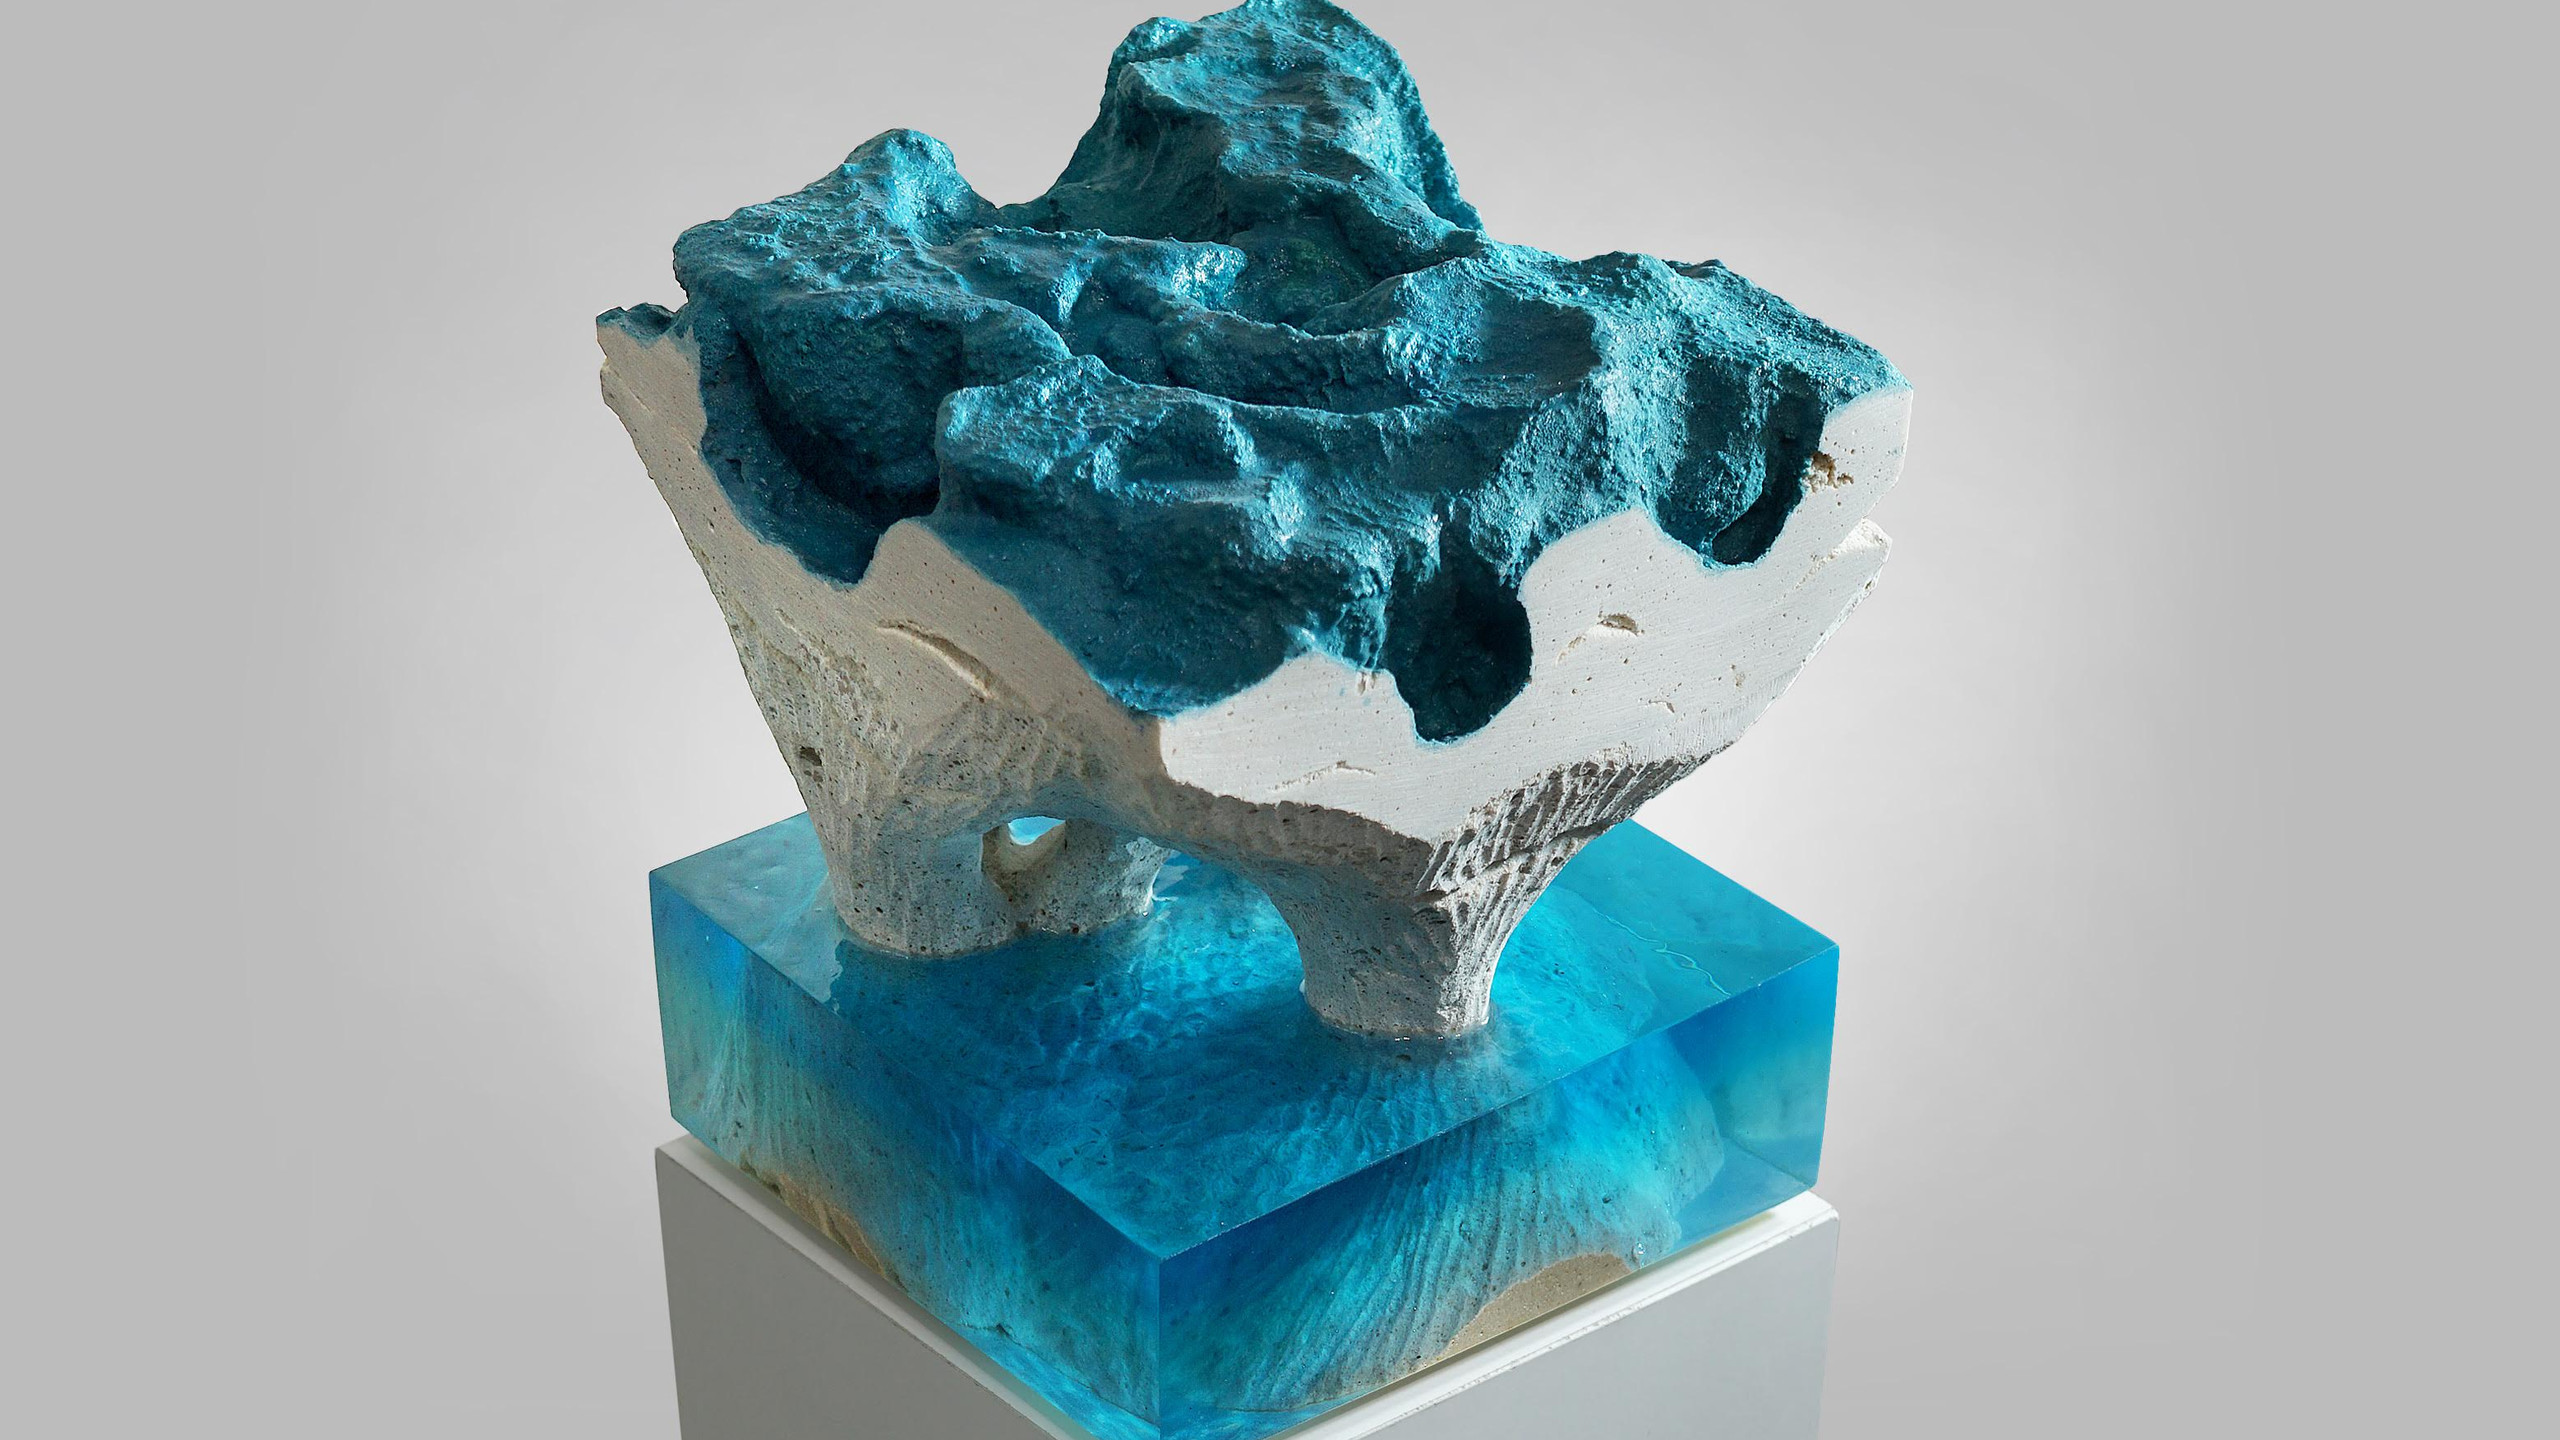 Ode to the Sea Sculpture